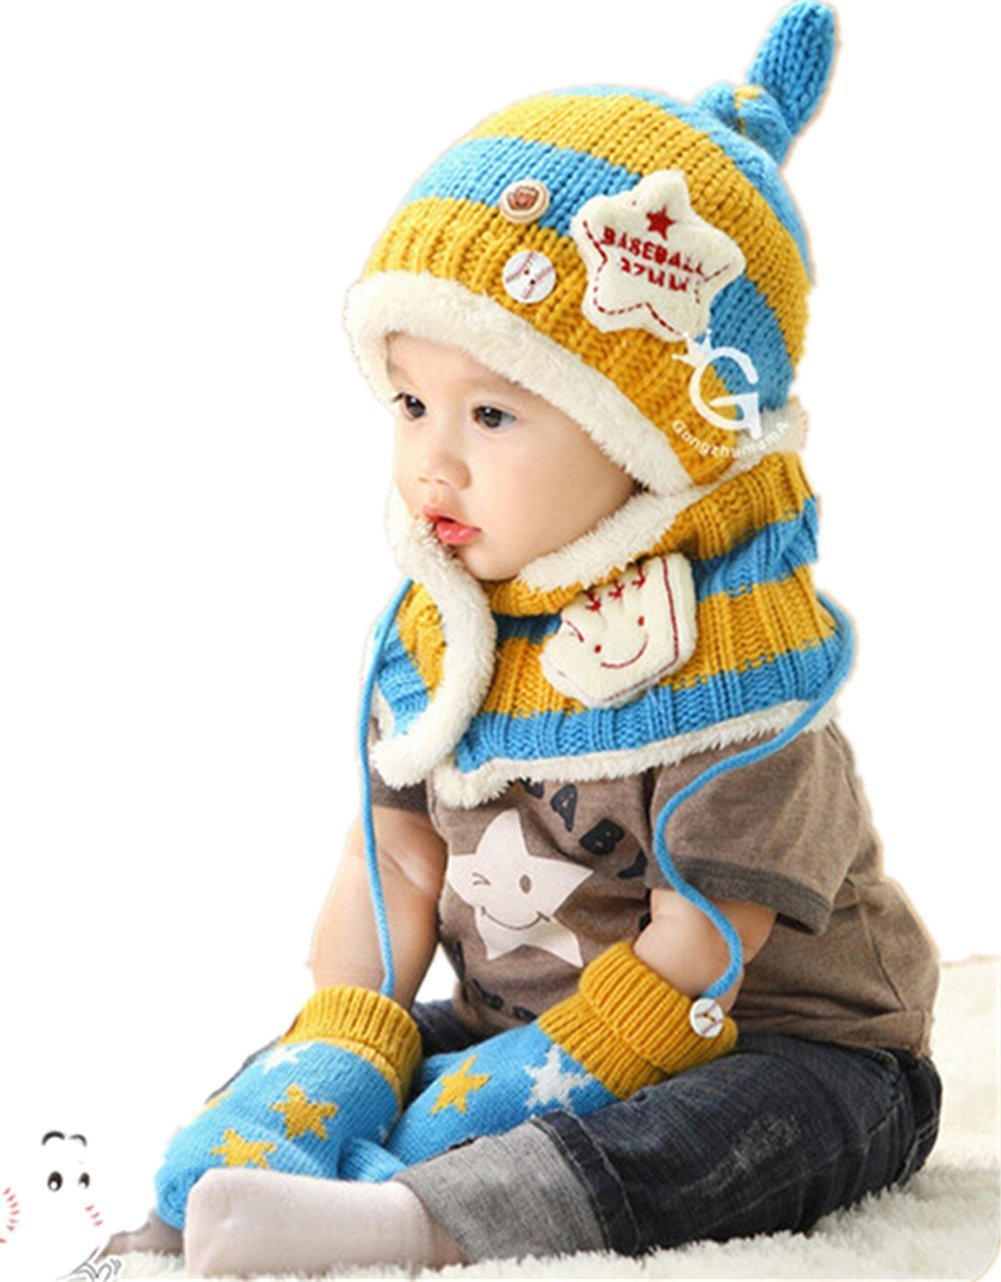 Winter Warm Boys Wool Hat/Scarf/Mitten Set Knitted Plush Hat Scarf Yellow &Blue